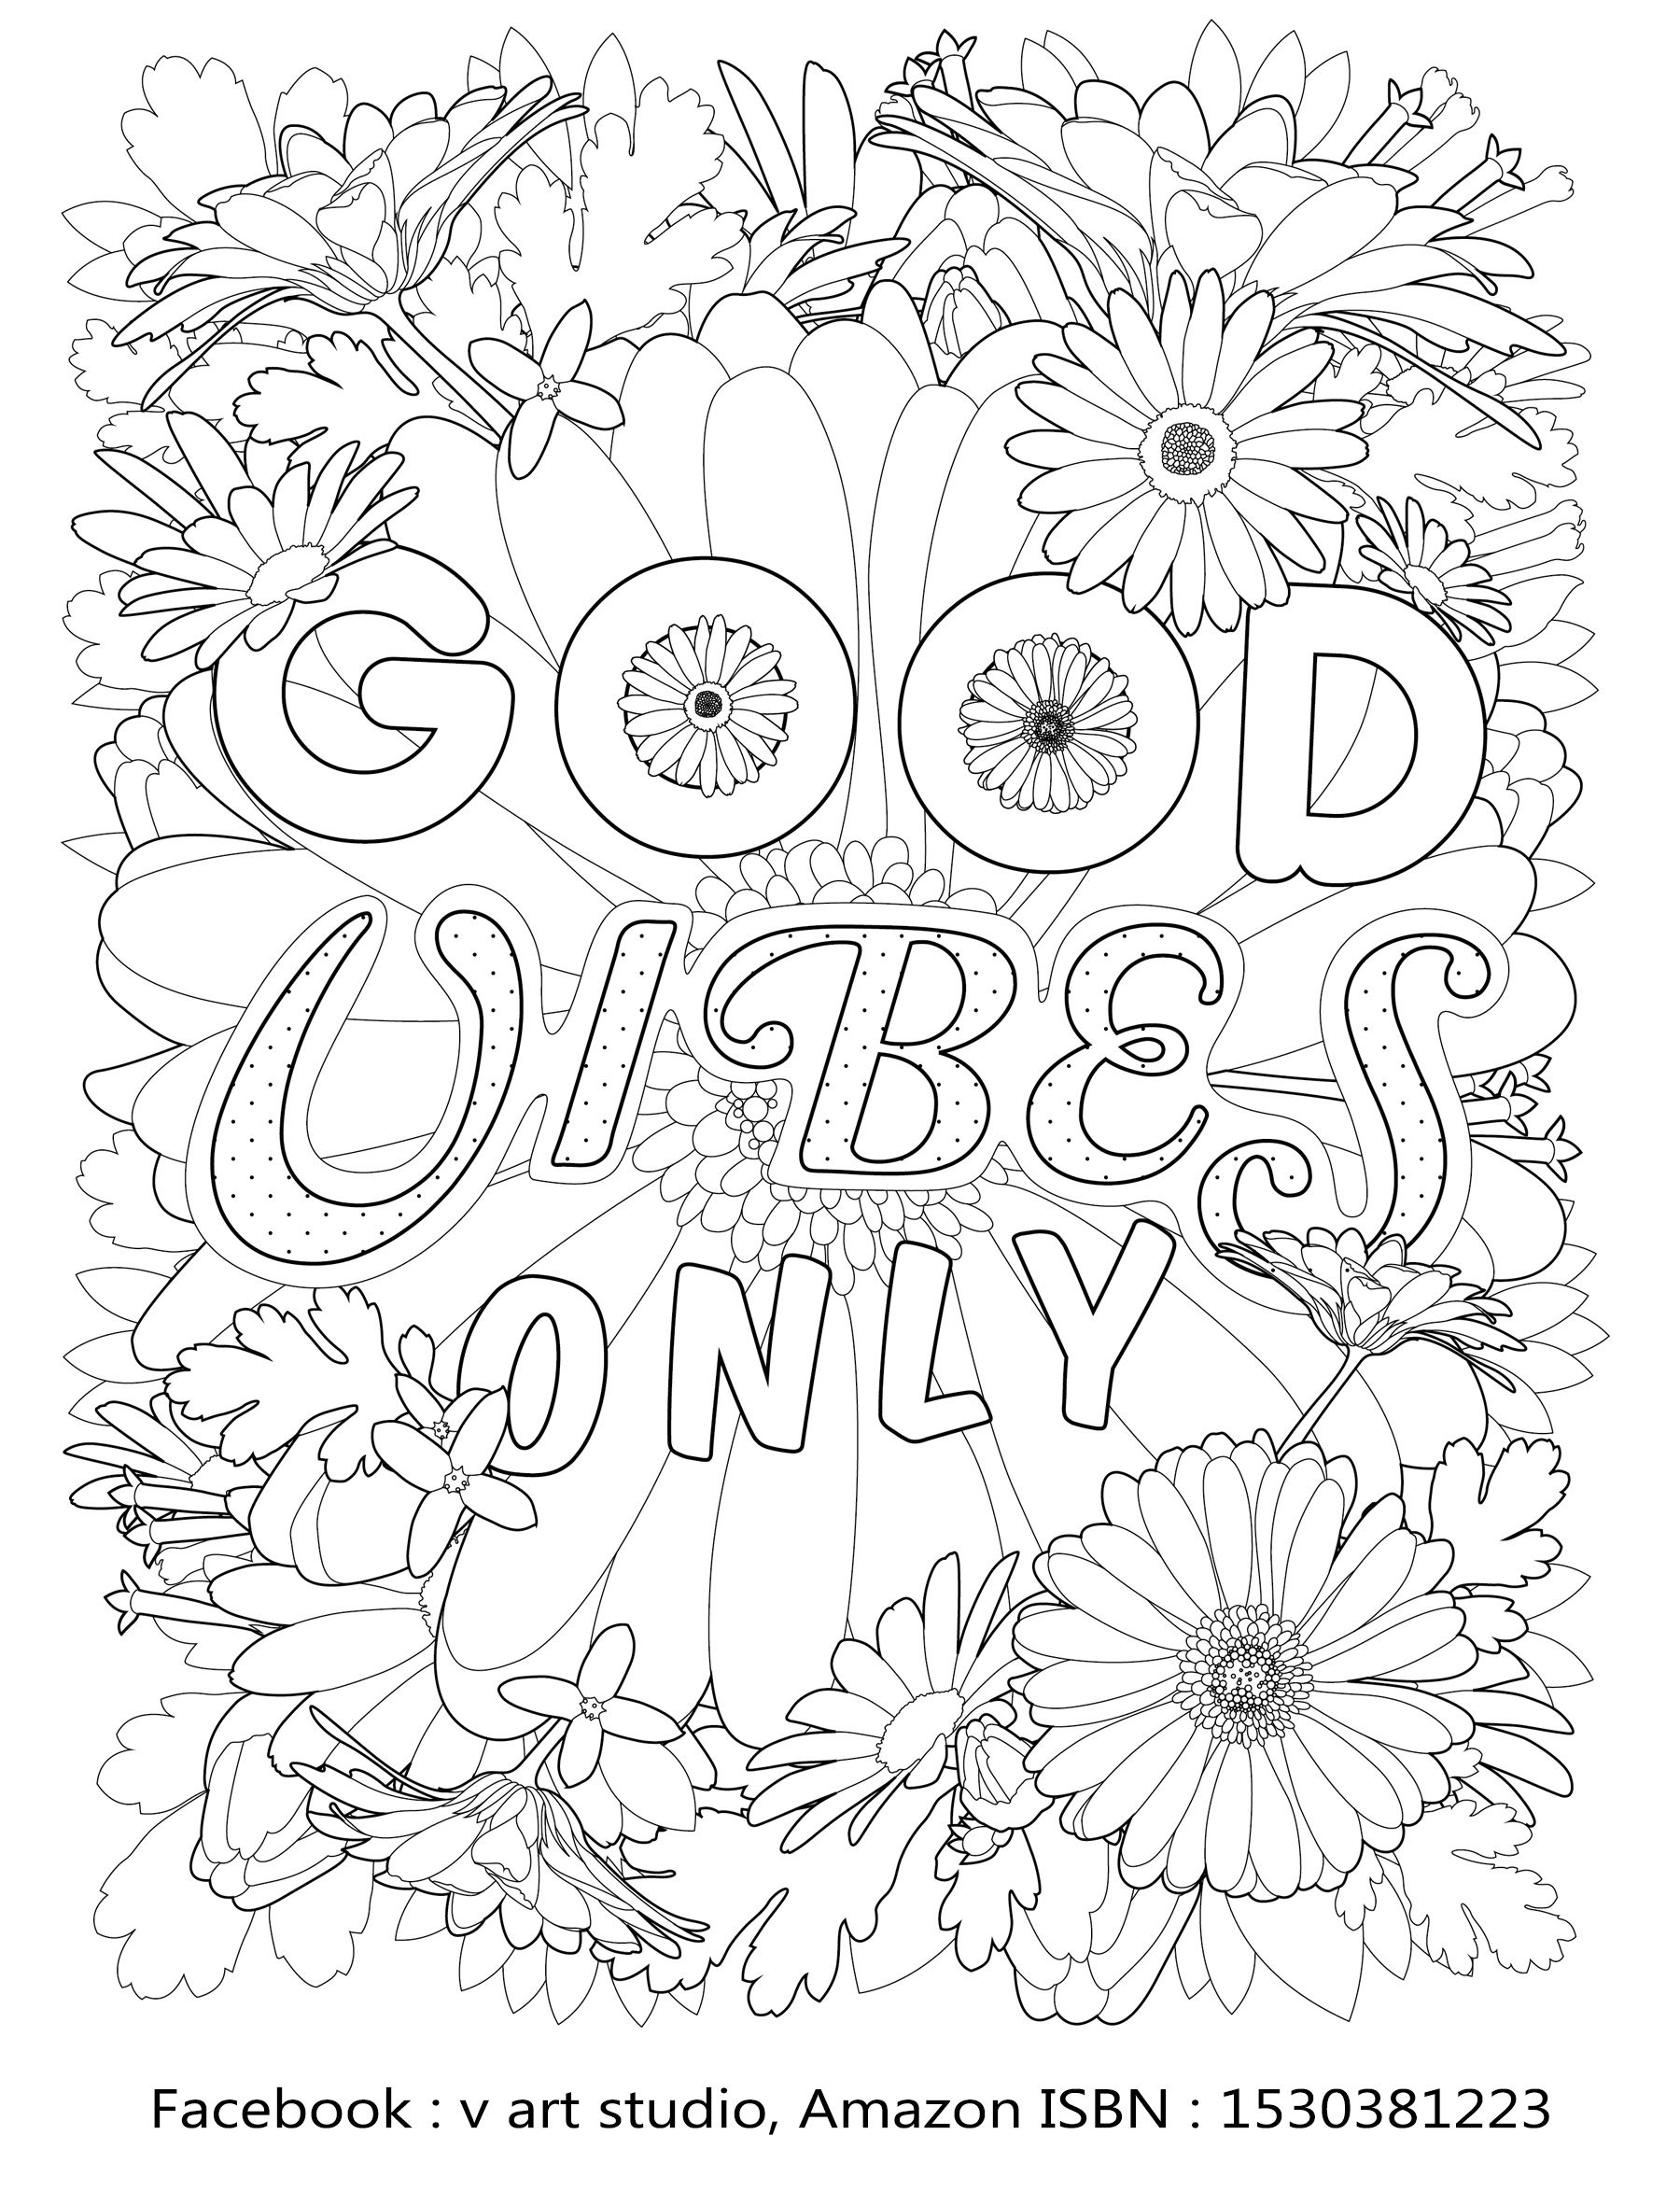 Pin By K Imagine Publishing On Free Coloring Pages Coloring Books Love Coloring Pages Coloring Pages Inspirational